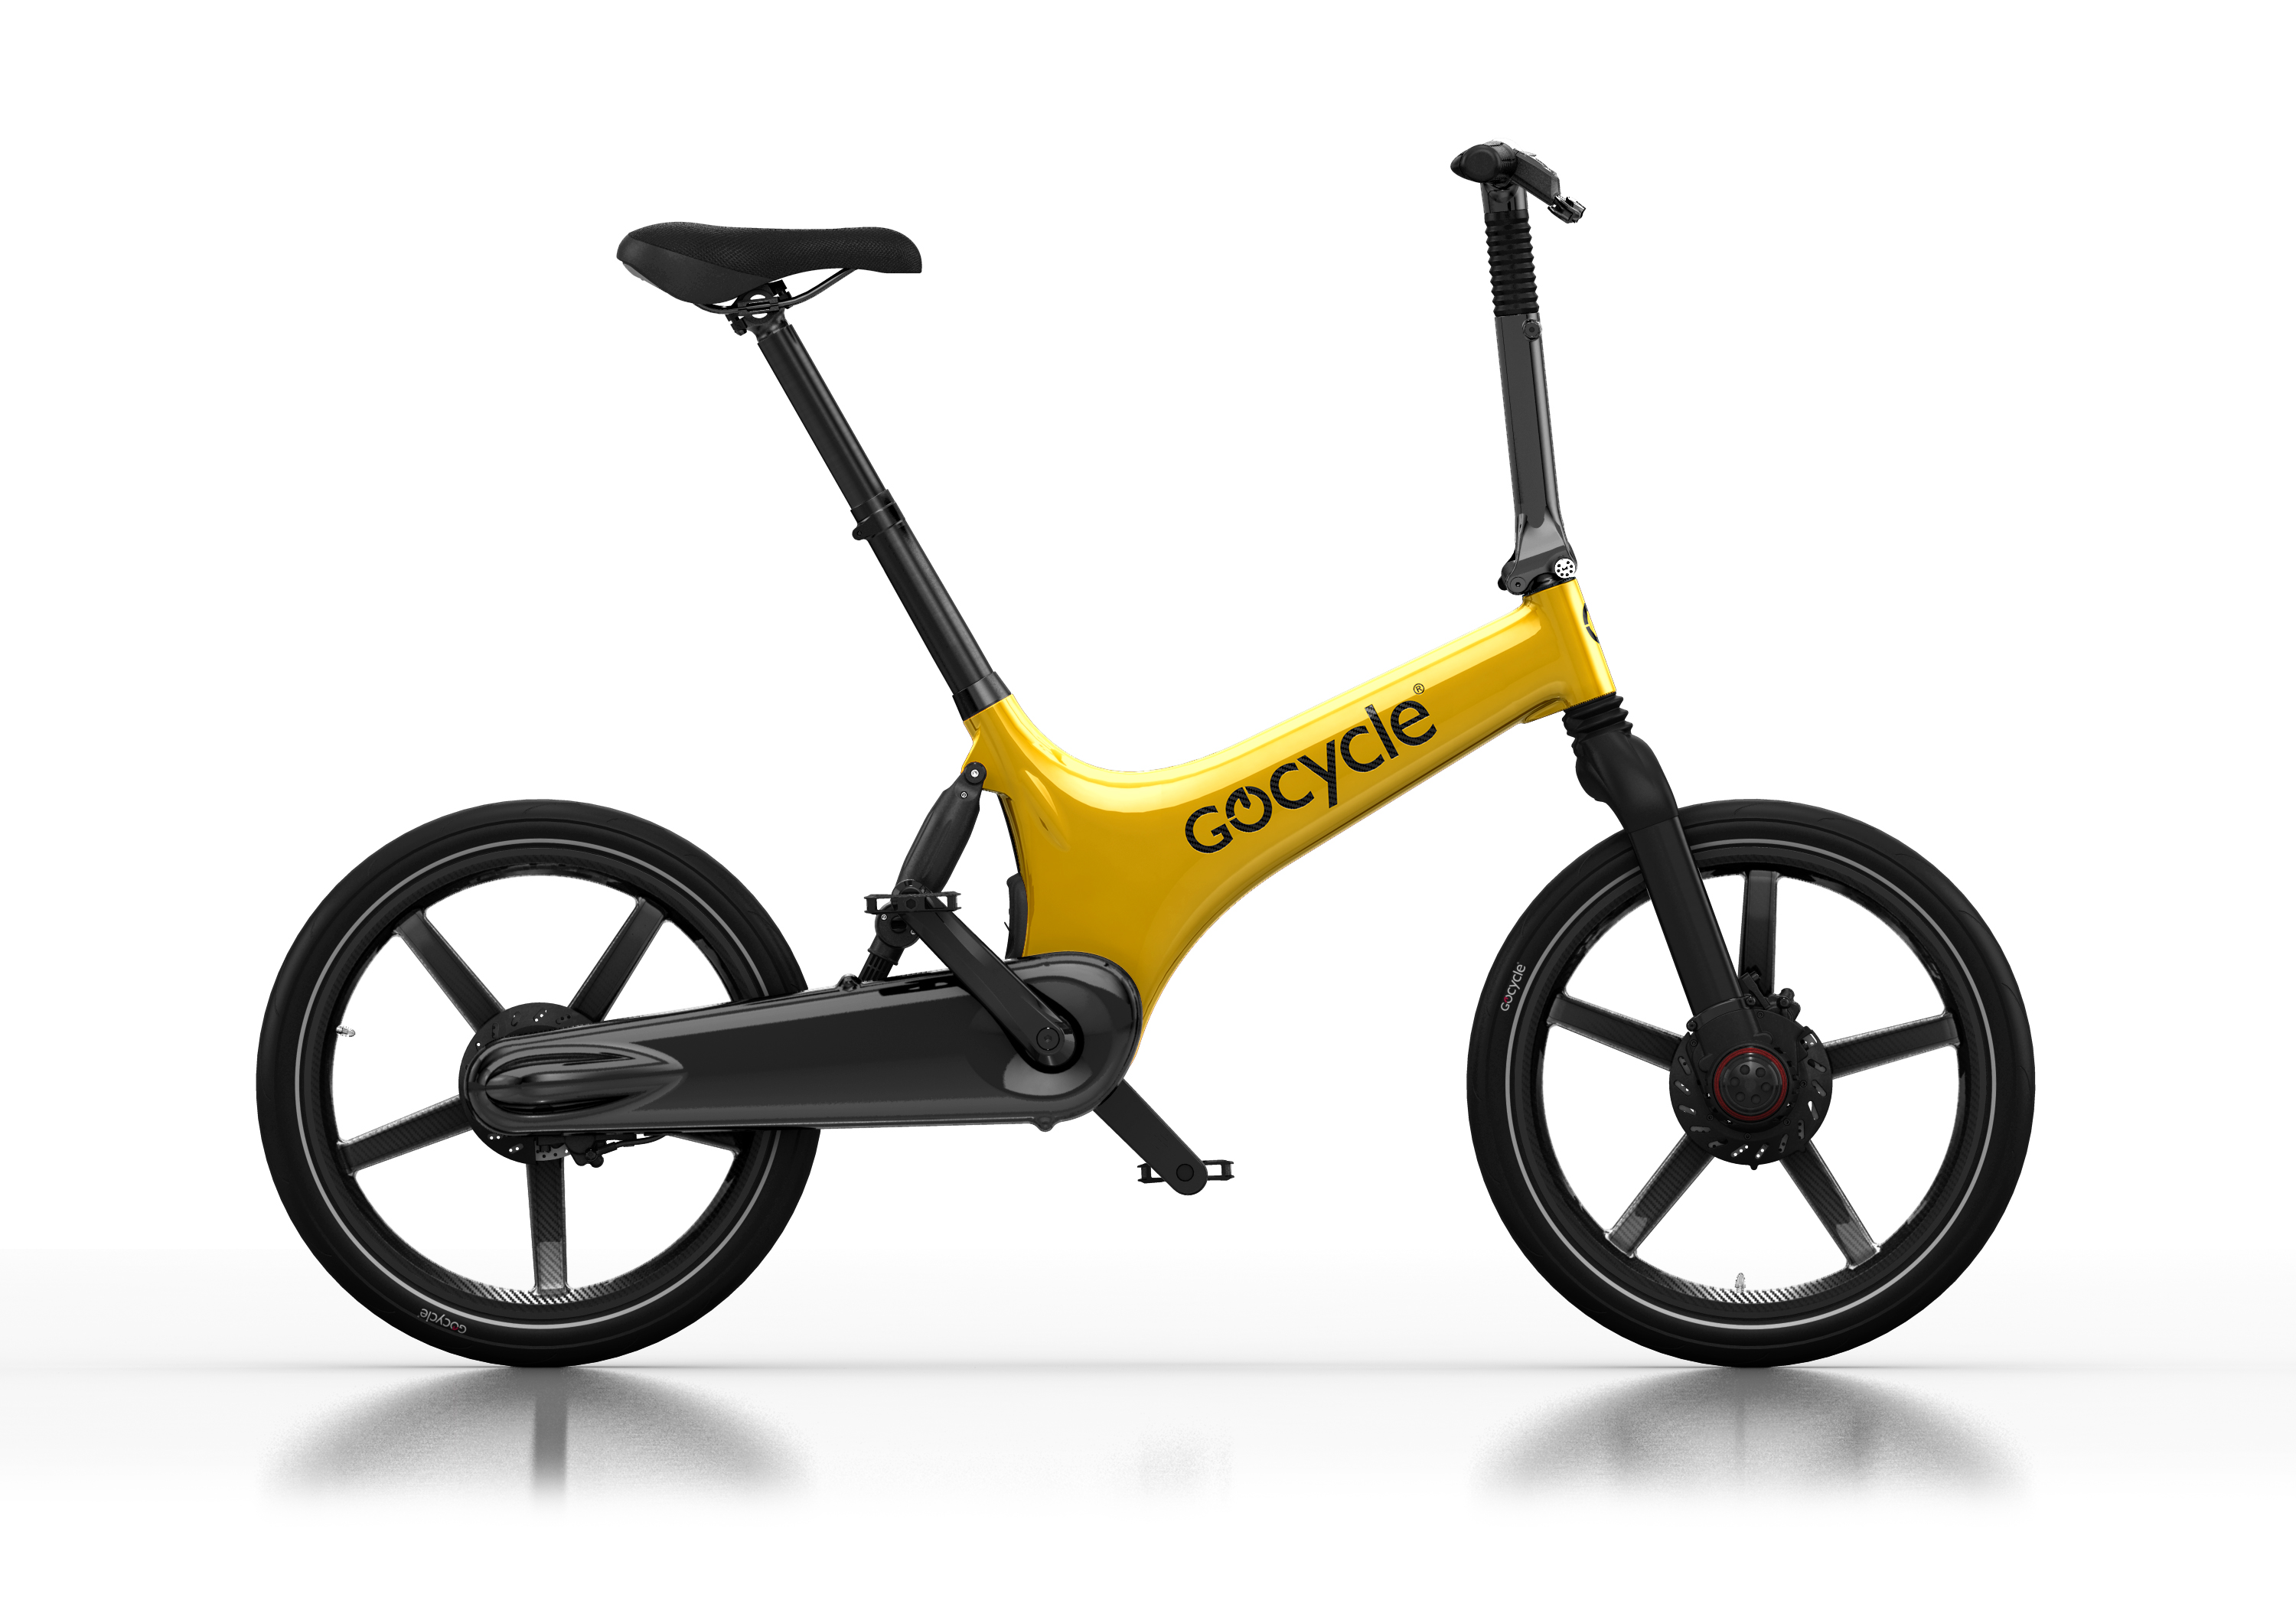 Gocycle G3C rumen